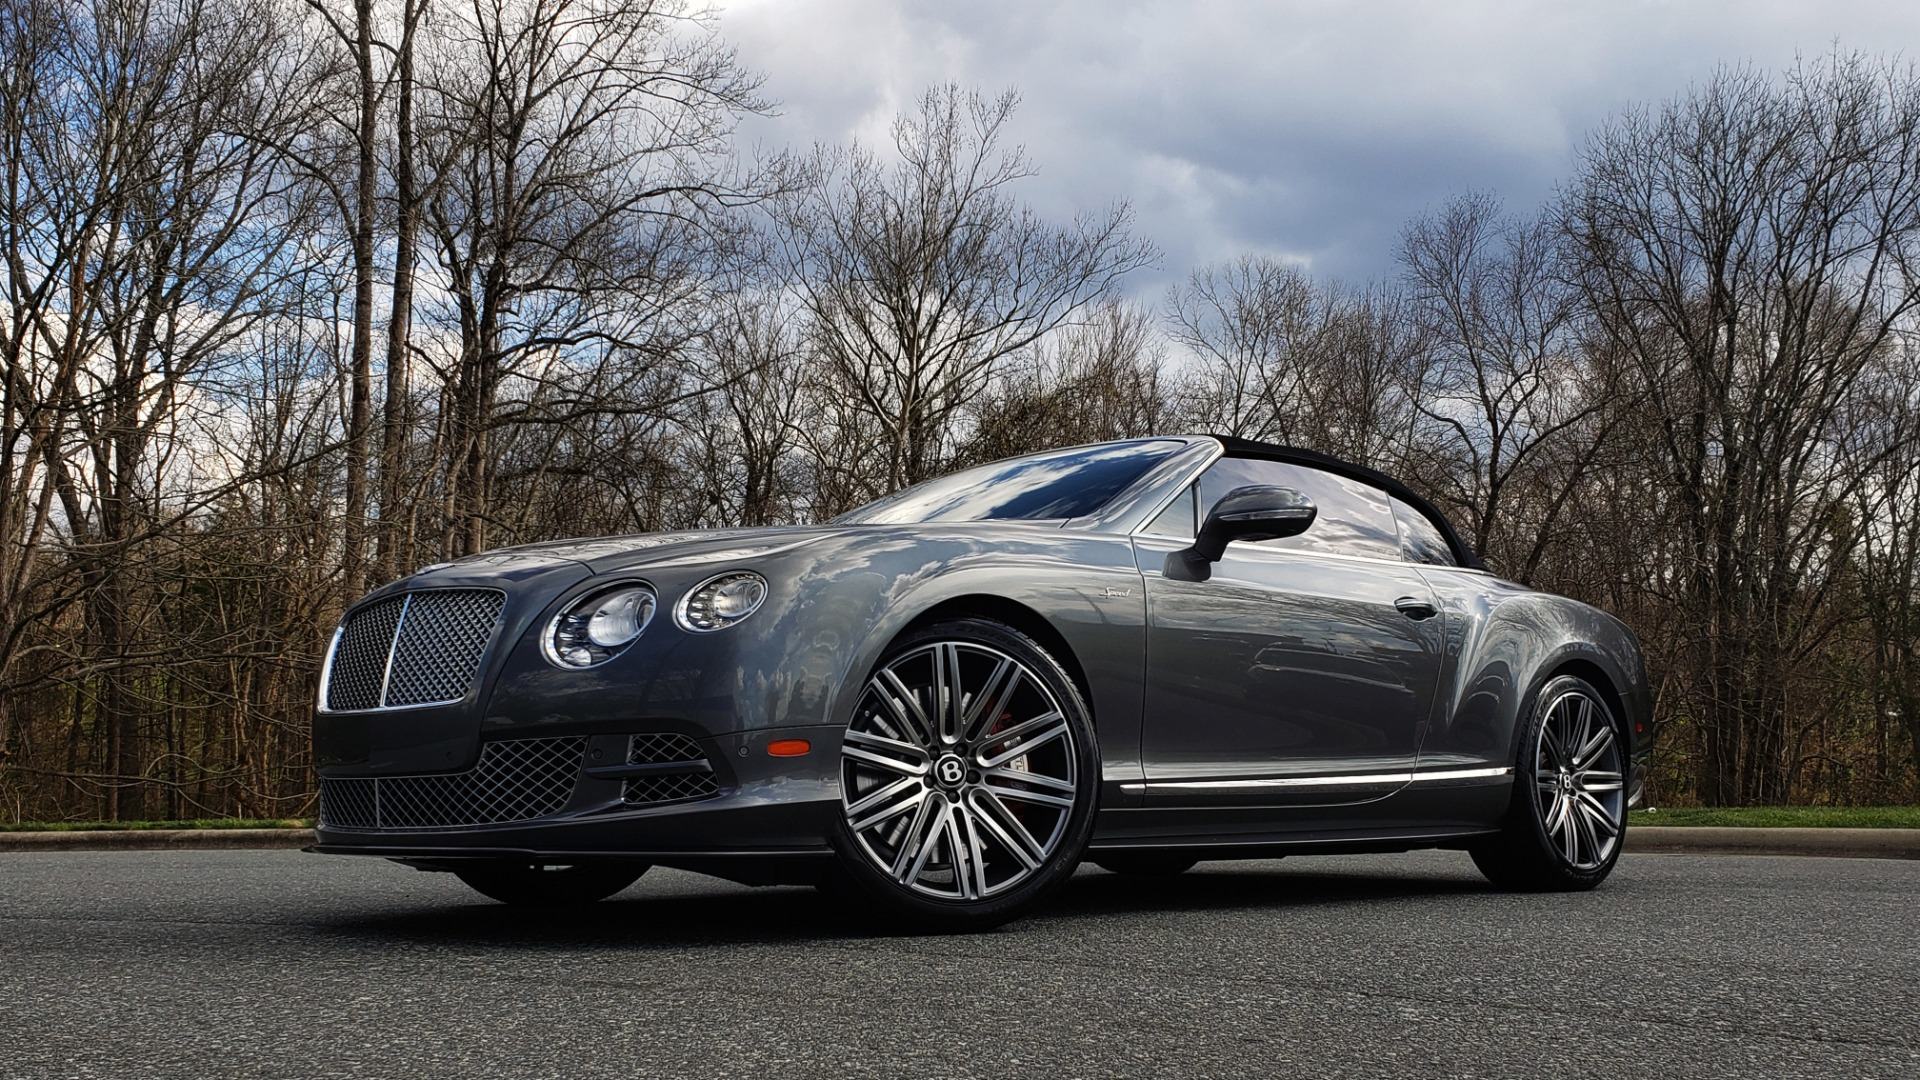 Used 2015 Bentley CONTINENTAL SPEED CONV / 6.0L W12 / NAV / VENT SEATS / REARVIEW for sale Sold at Formula Imports in Charlotte NC 28227 4